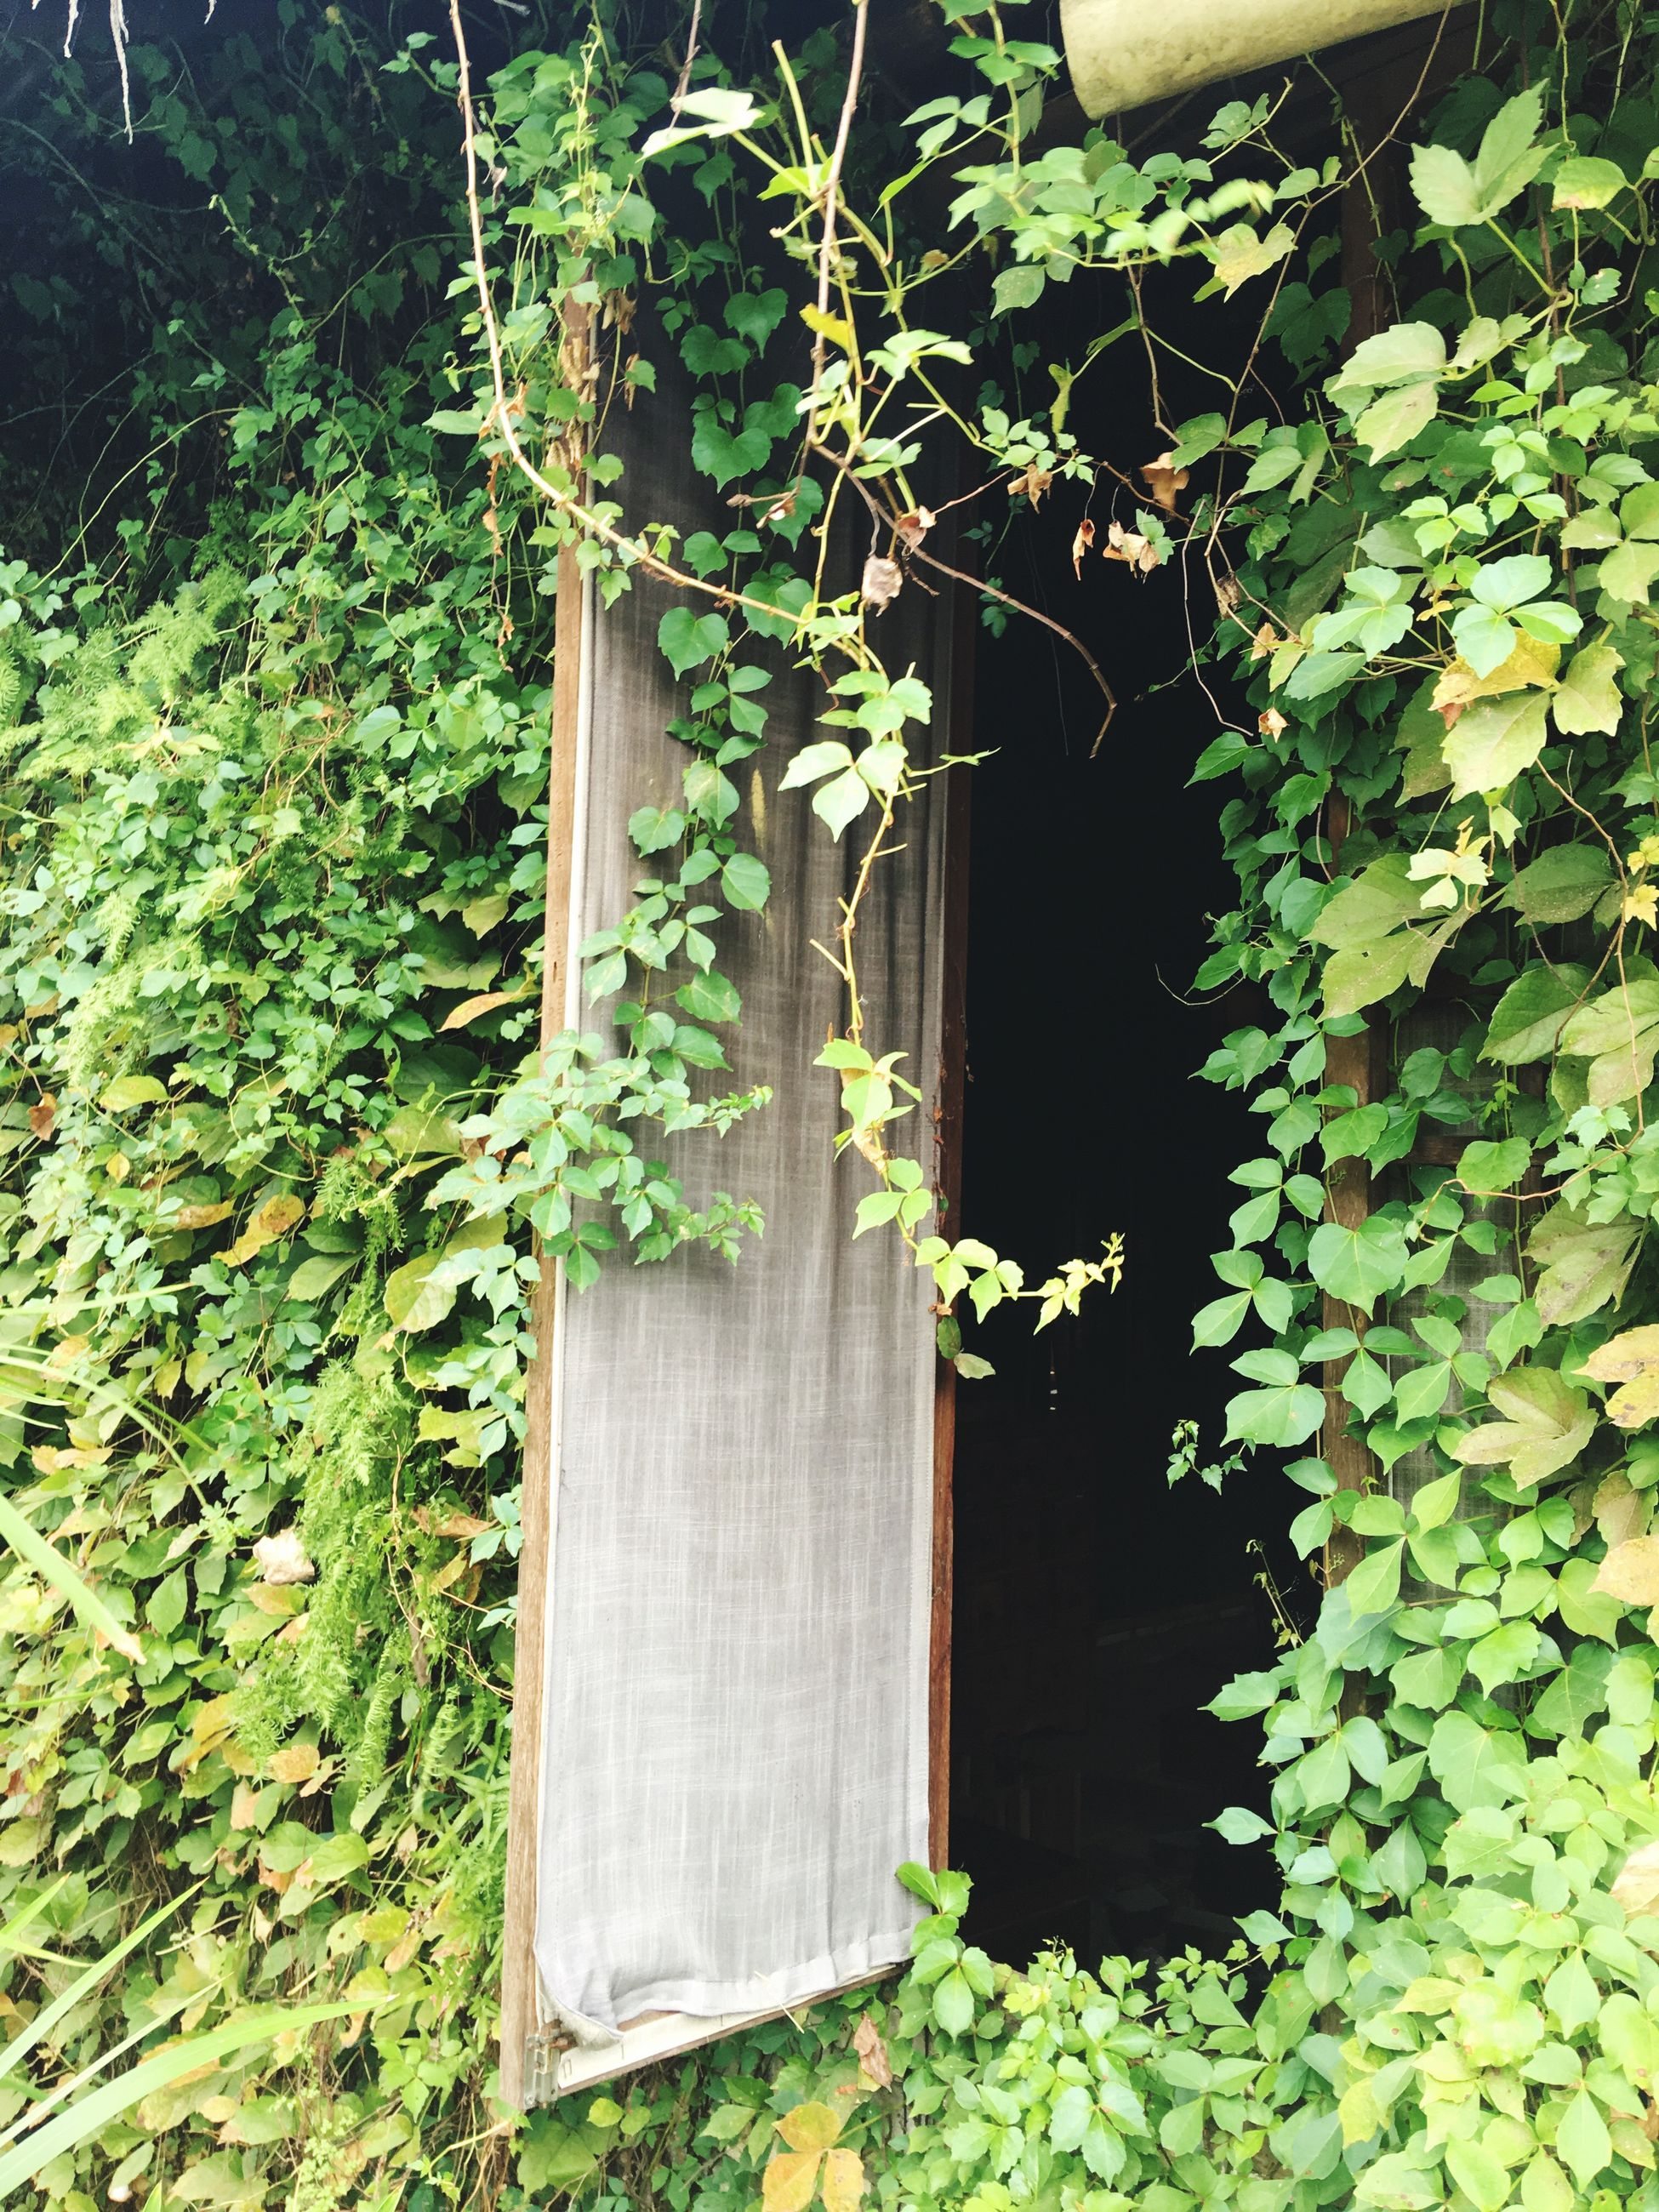 growth, plant, leaf, ivy, architecture, creeper plant, green color, nature, vine, creeper, day, freshness, outdoors, lush foliage, growing, green, beauty in nature, flowering, fragility, tranquility, scenics, no people, plant life